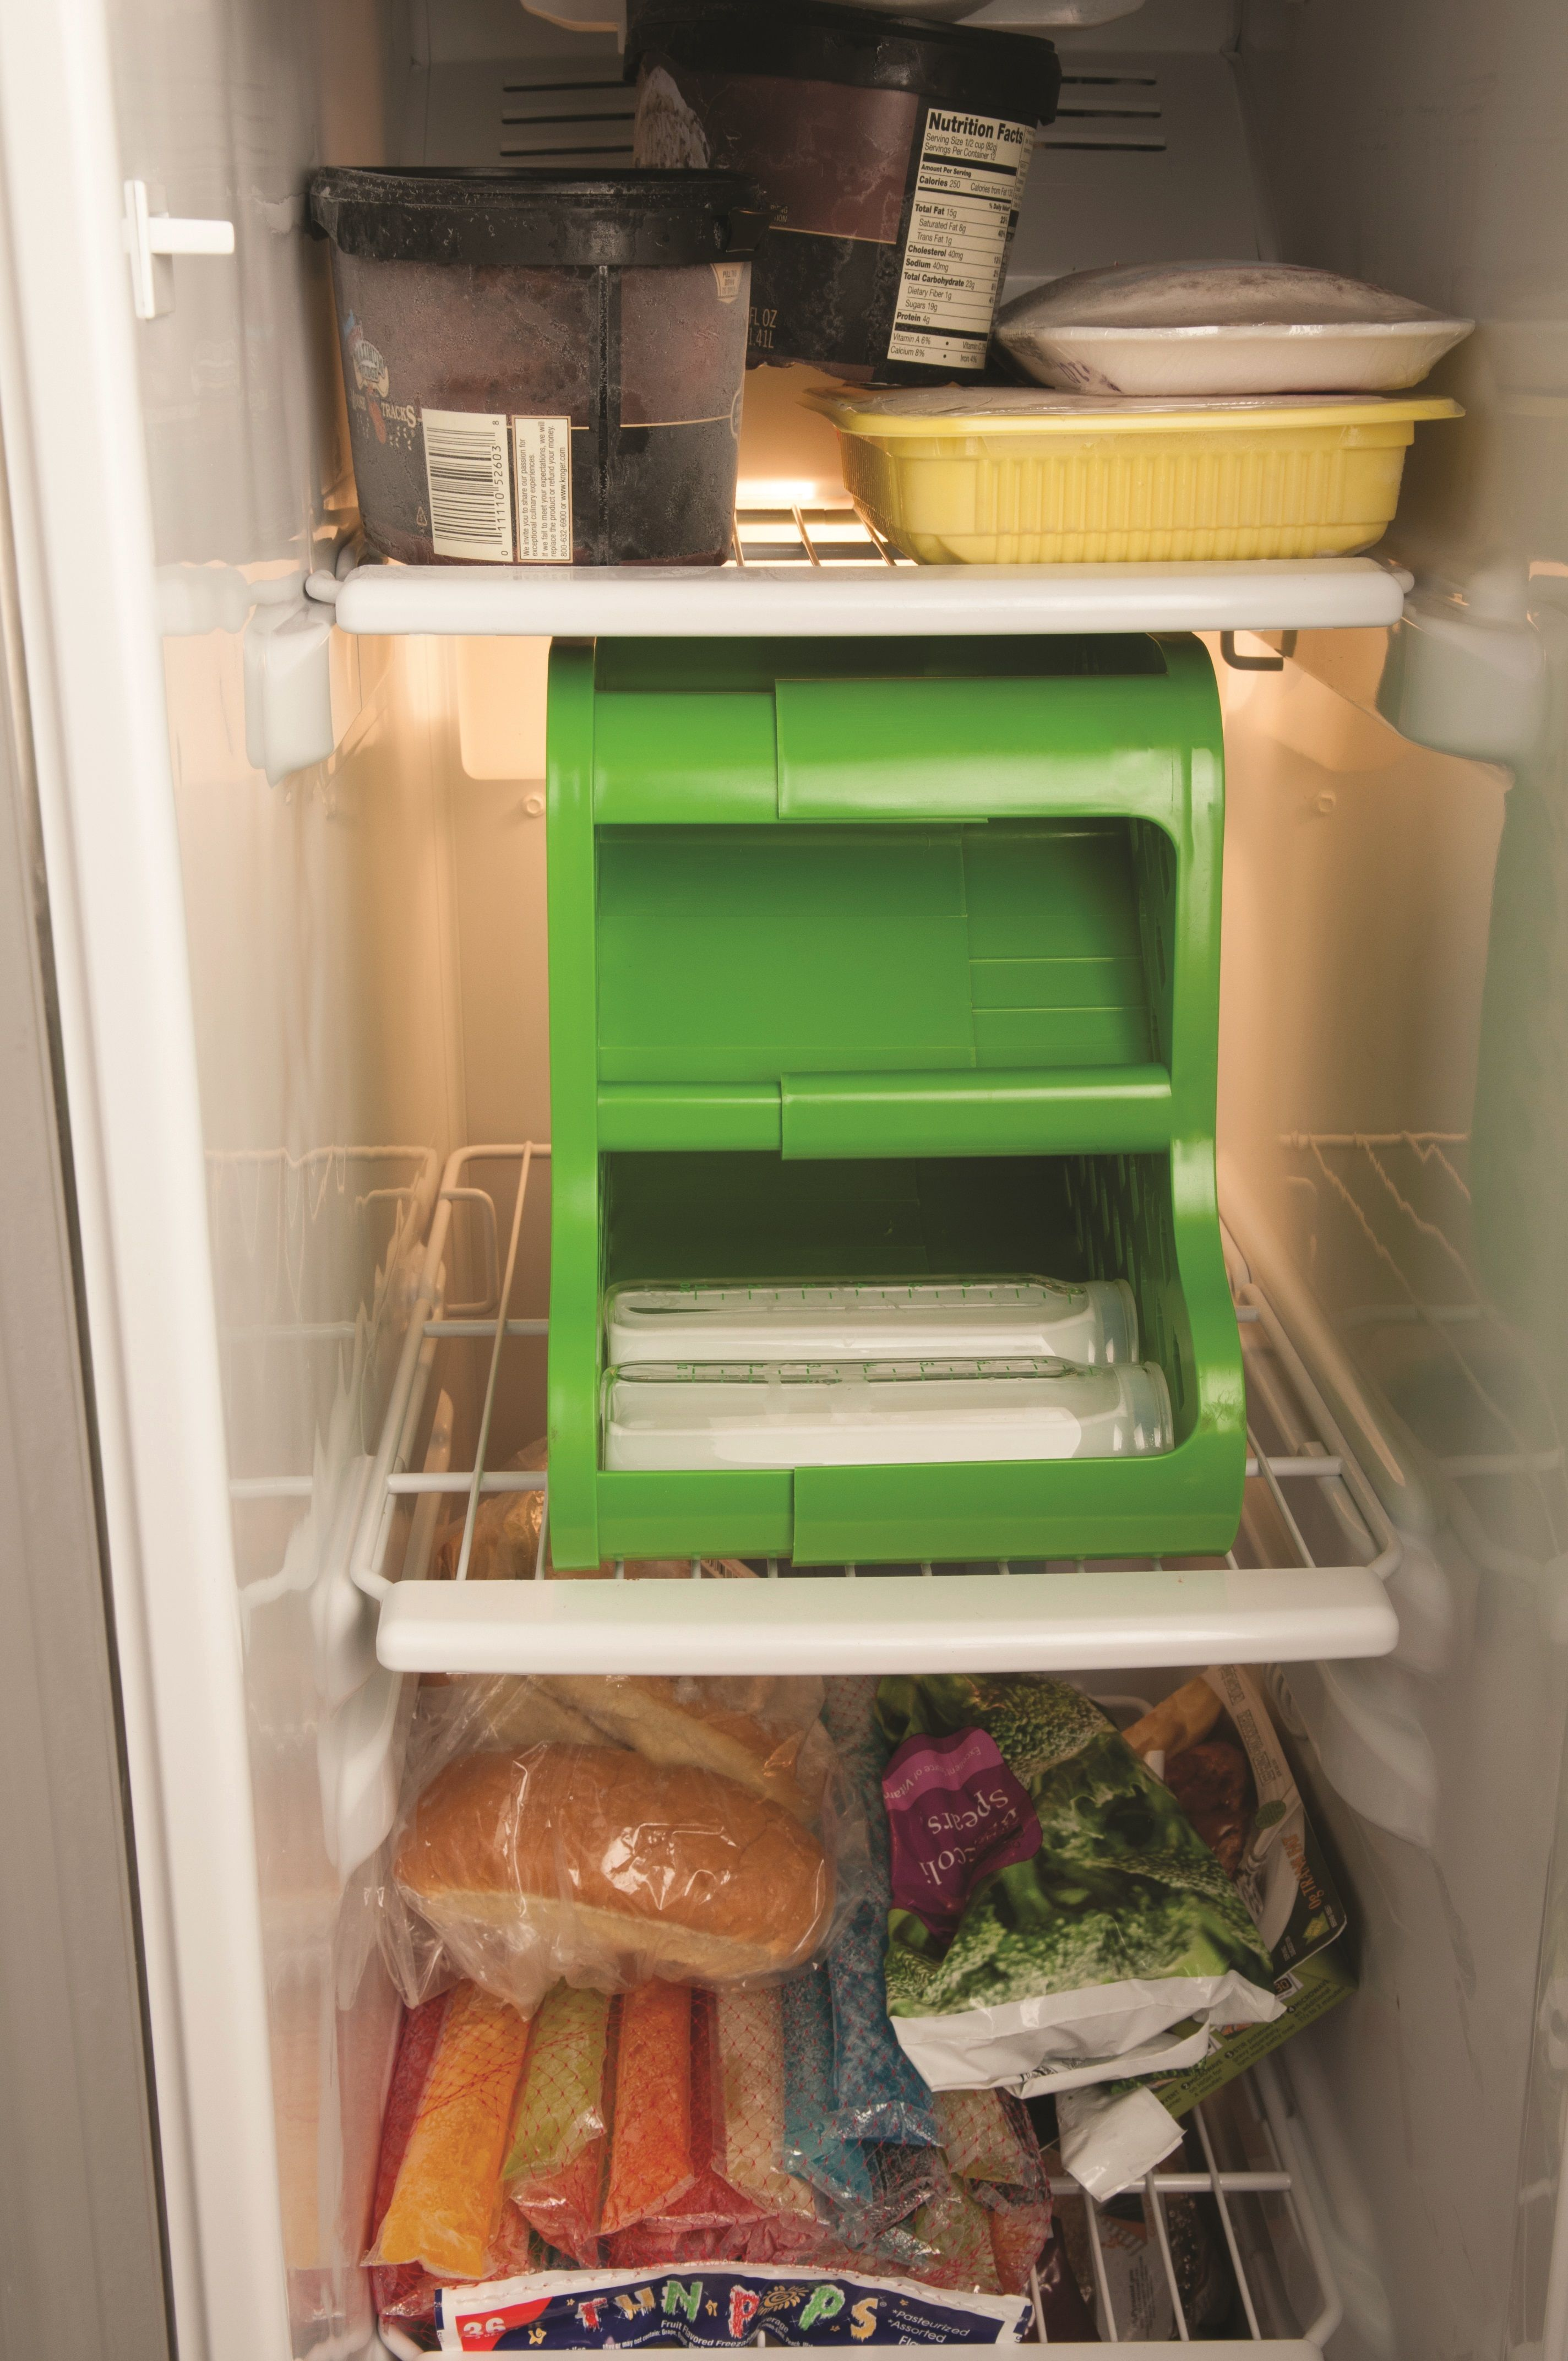 Bedroom Baby Milk Cooler: How To Keep Expressed Breast Milk Organized By Date In The